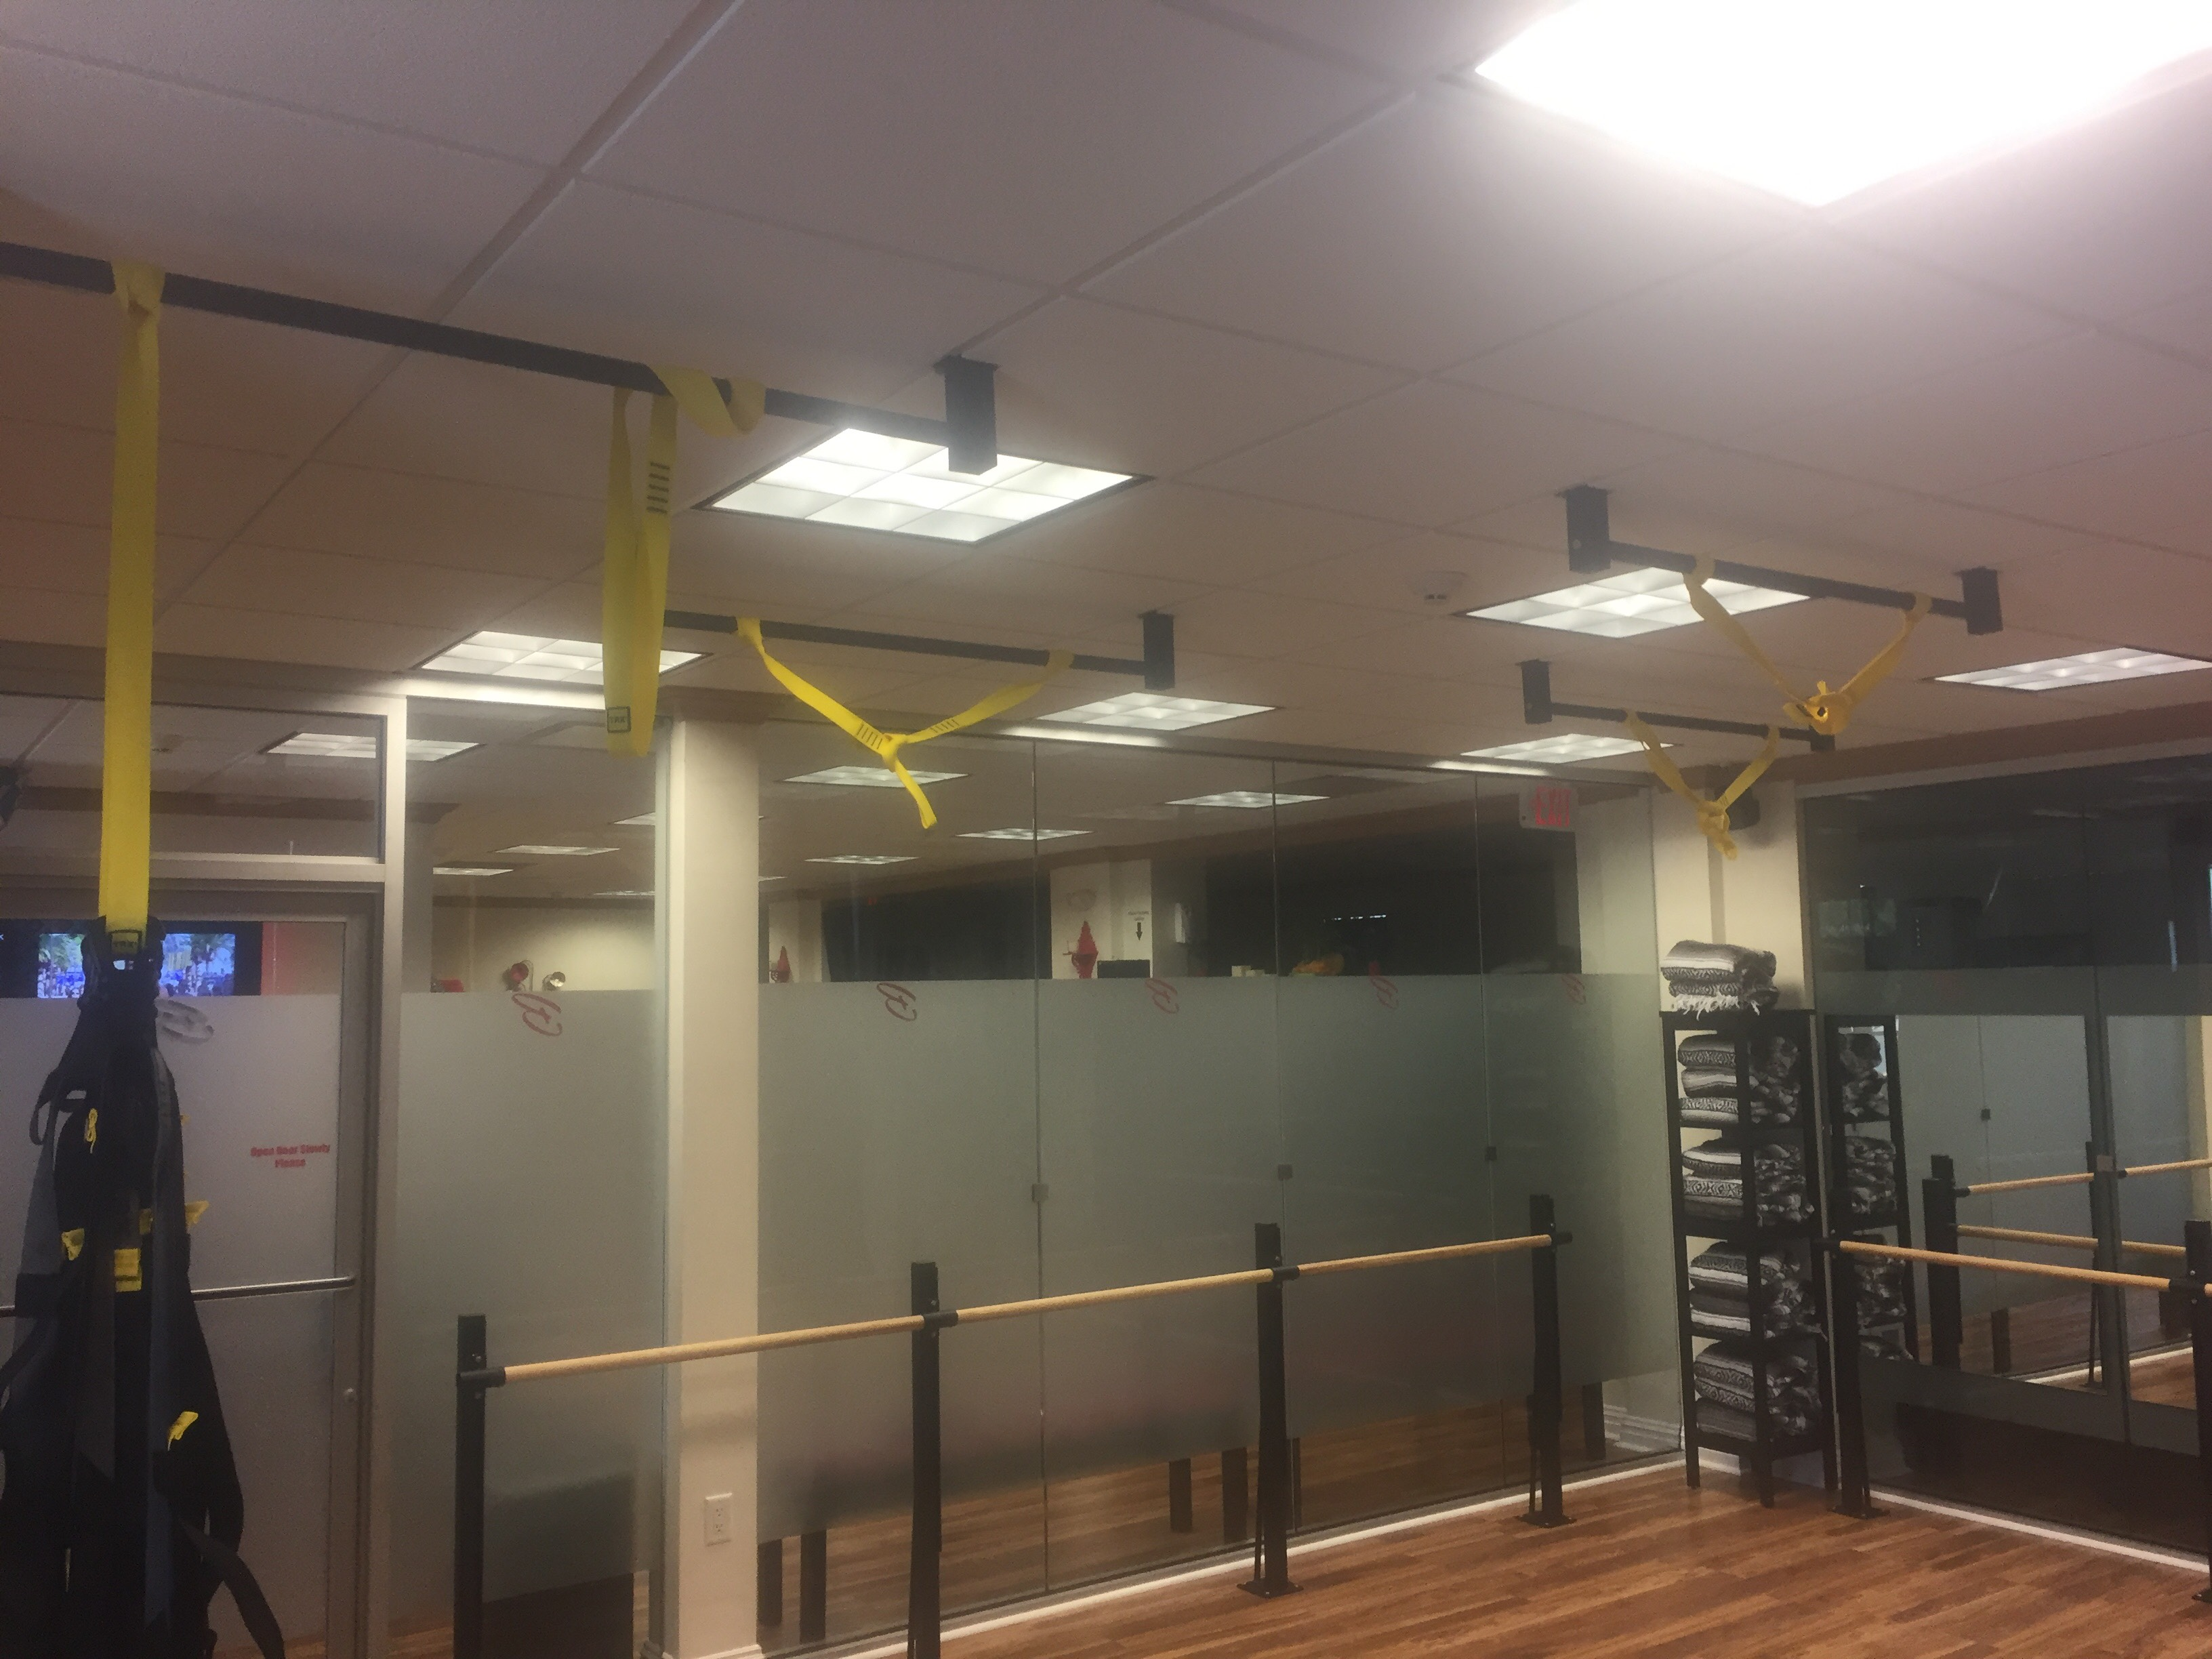 How To Hang Trx From Ceiling Mail Cabinet